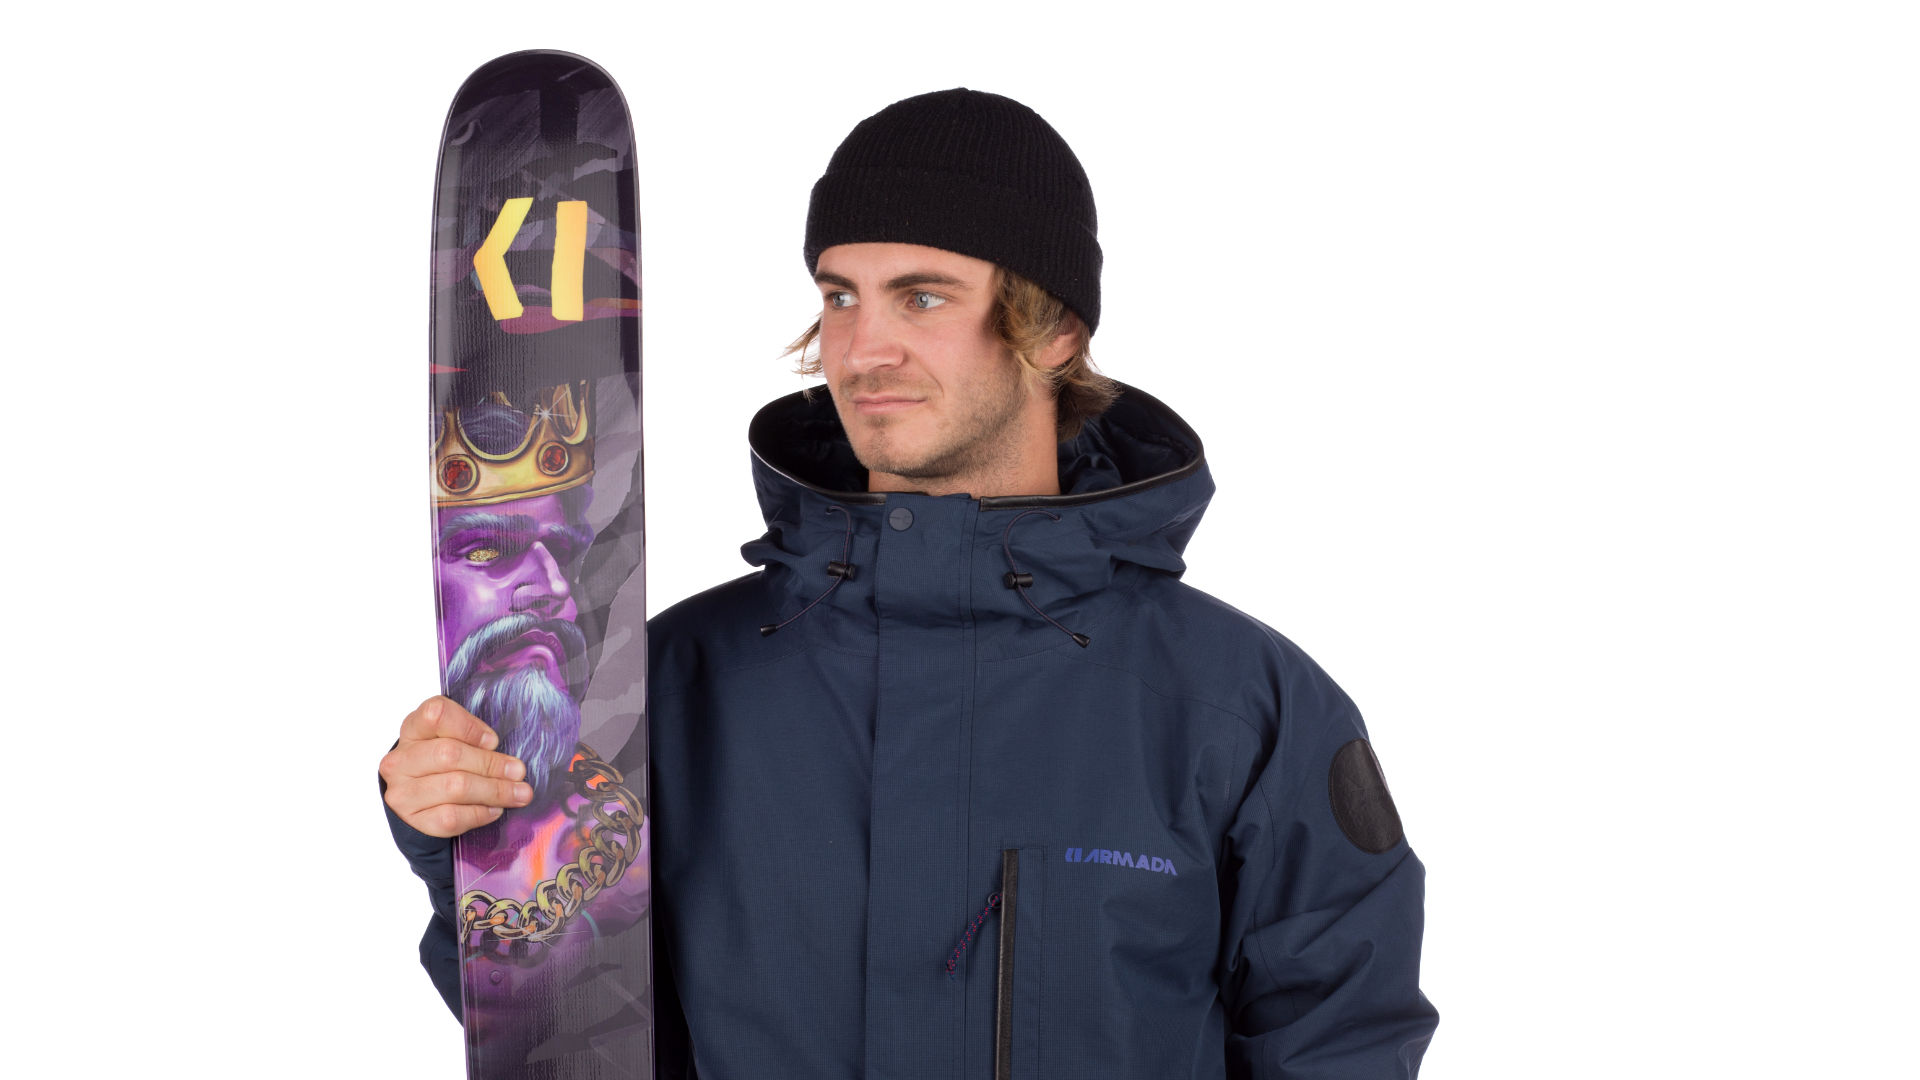 Model with a pair of freeride freeskis